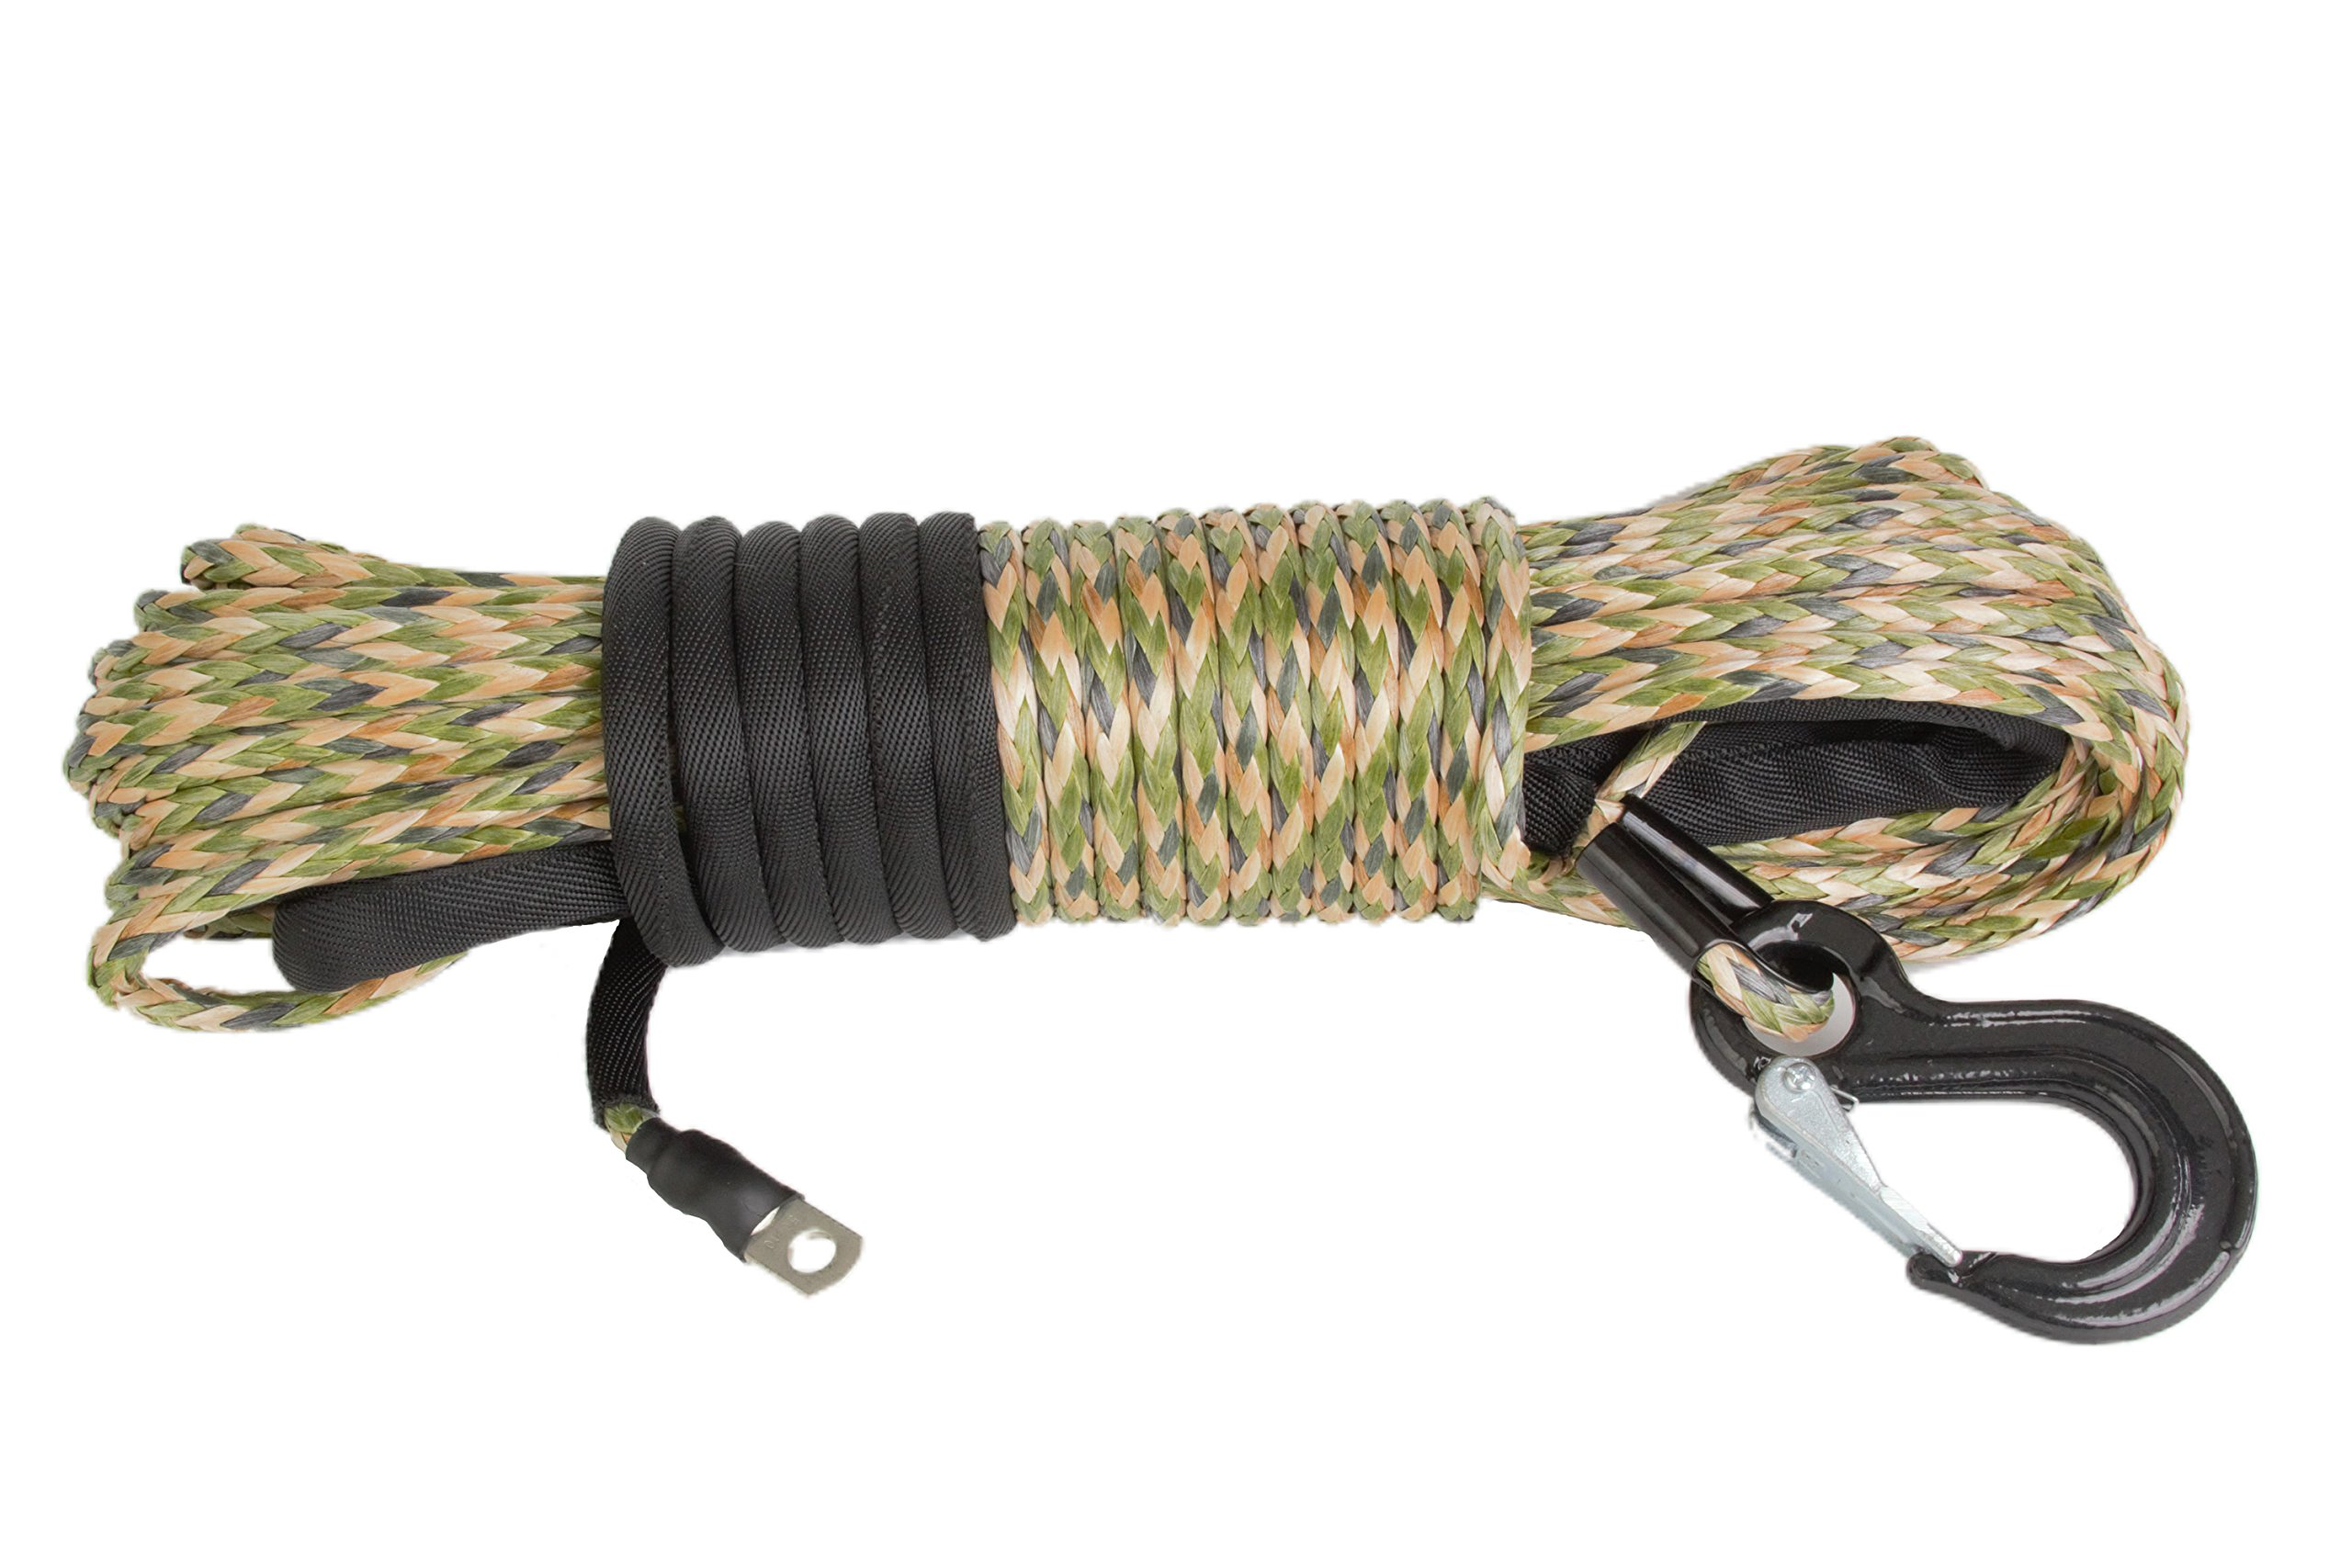 California Cordage Camouflage 5/16'' x 50' (8mm x 15.25m)